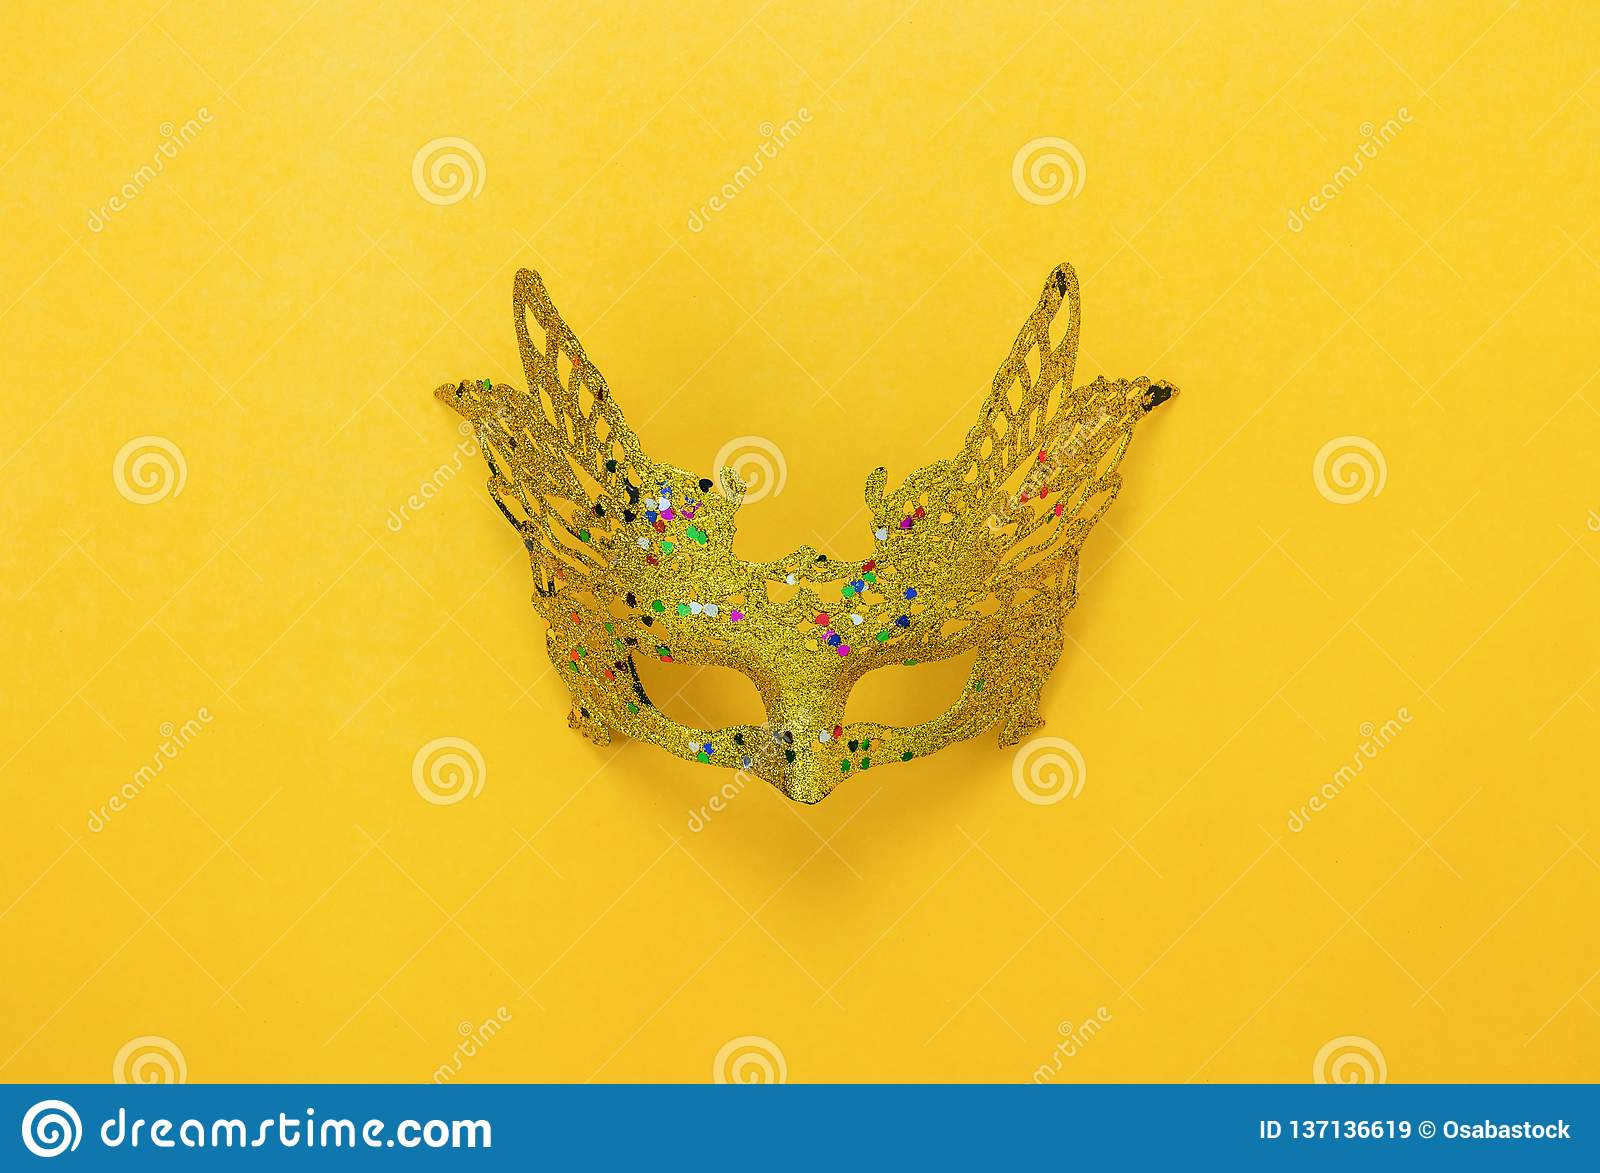 Table top view aerial image of beautiful colorful carnival season or photo booth prop Mardi Gras background.Flat lay object gold